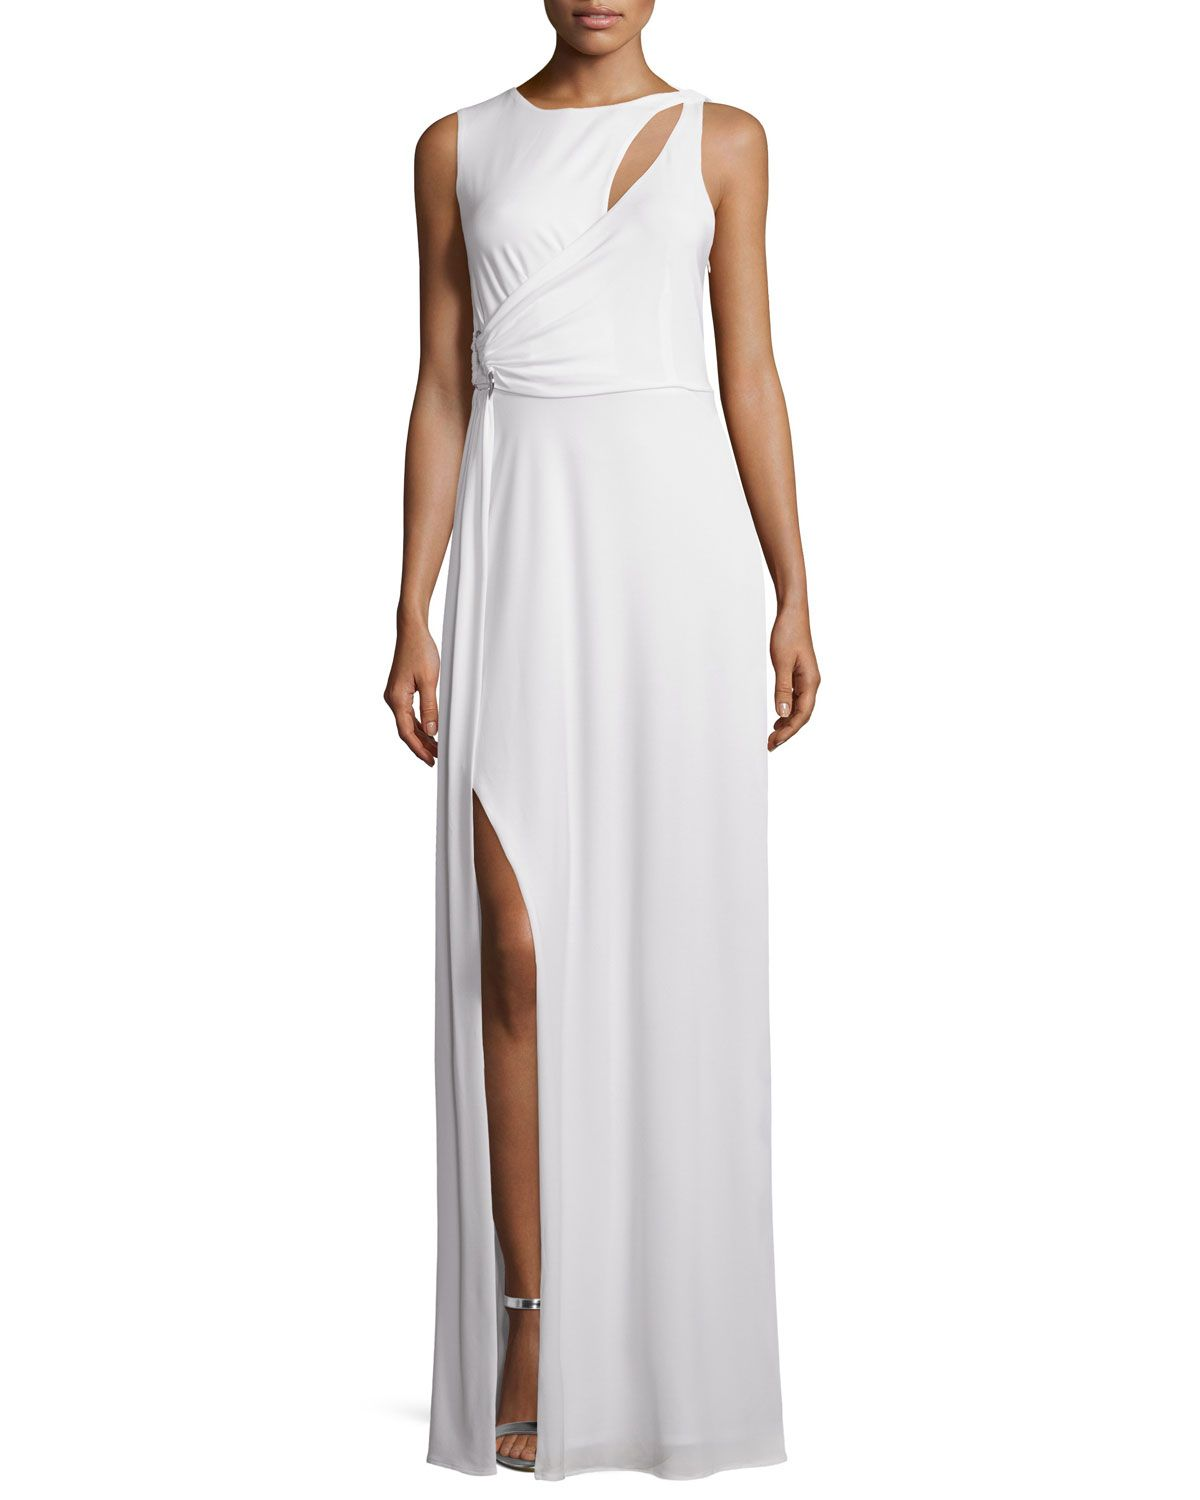 Neiman marcus dresses for weddings  Halston Heritage Sleeveless Draped Gown WCutouts Bone Ivory